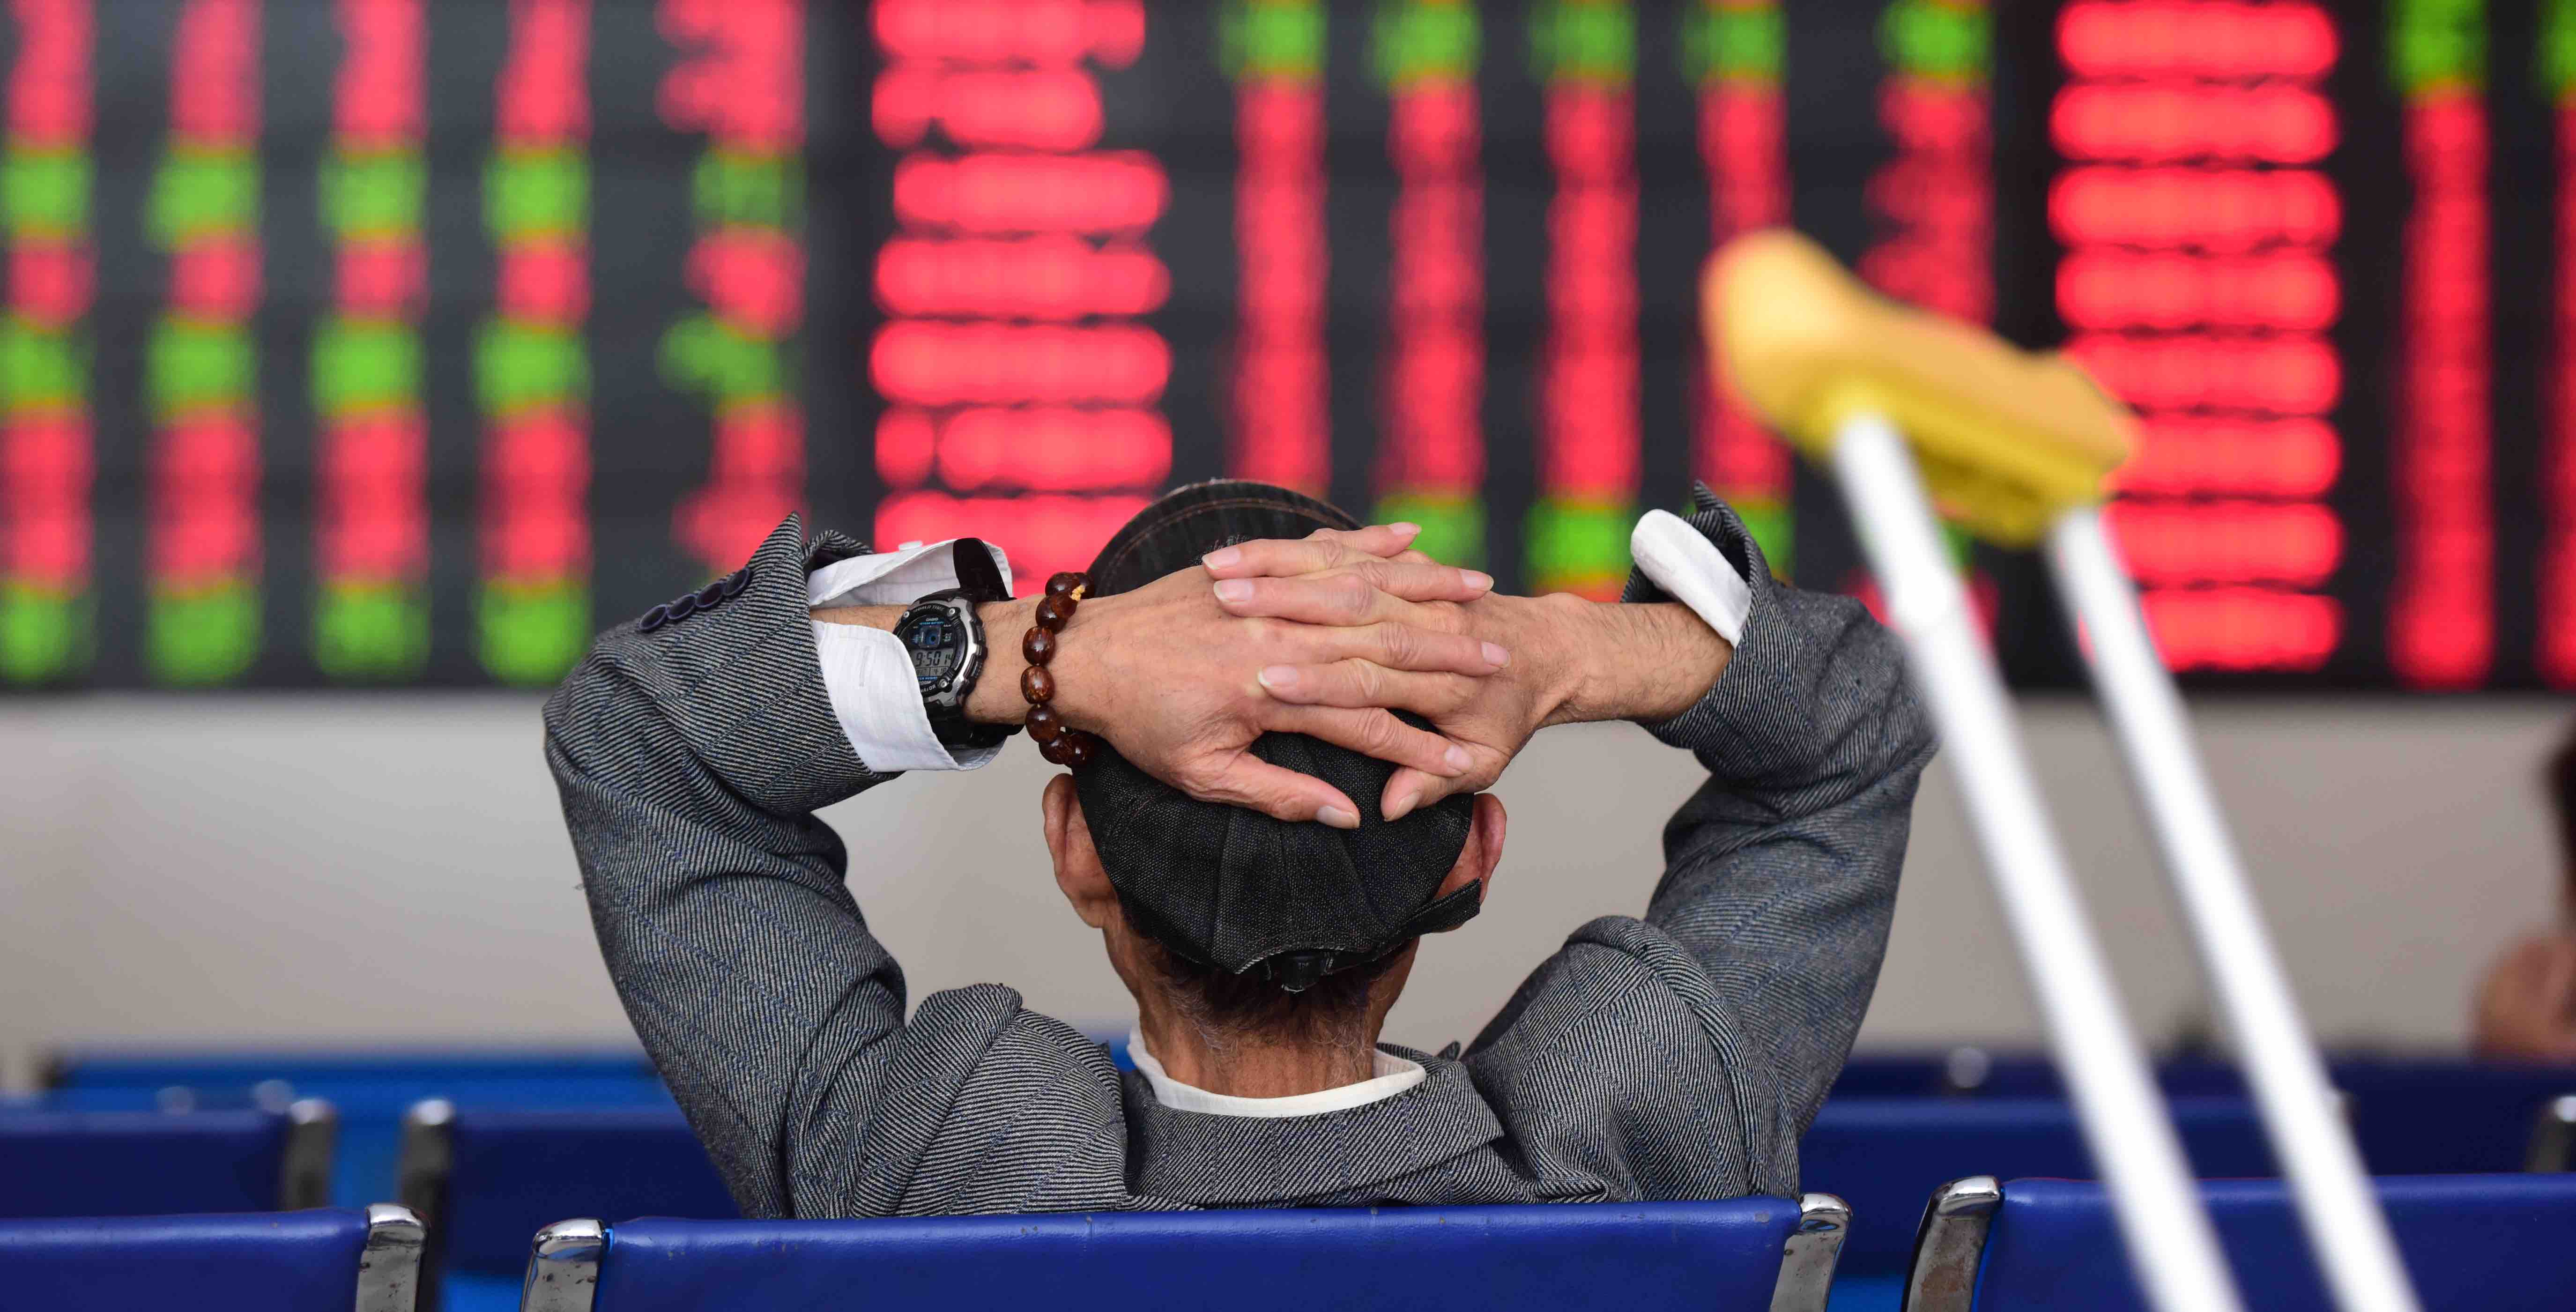 The stock exchange hall in Fuyang, China (Photo: VCG via Getty Images)